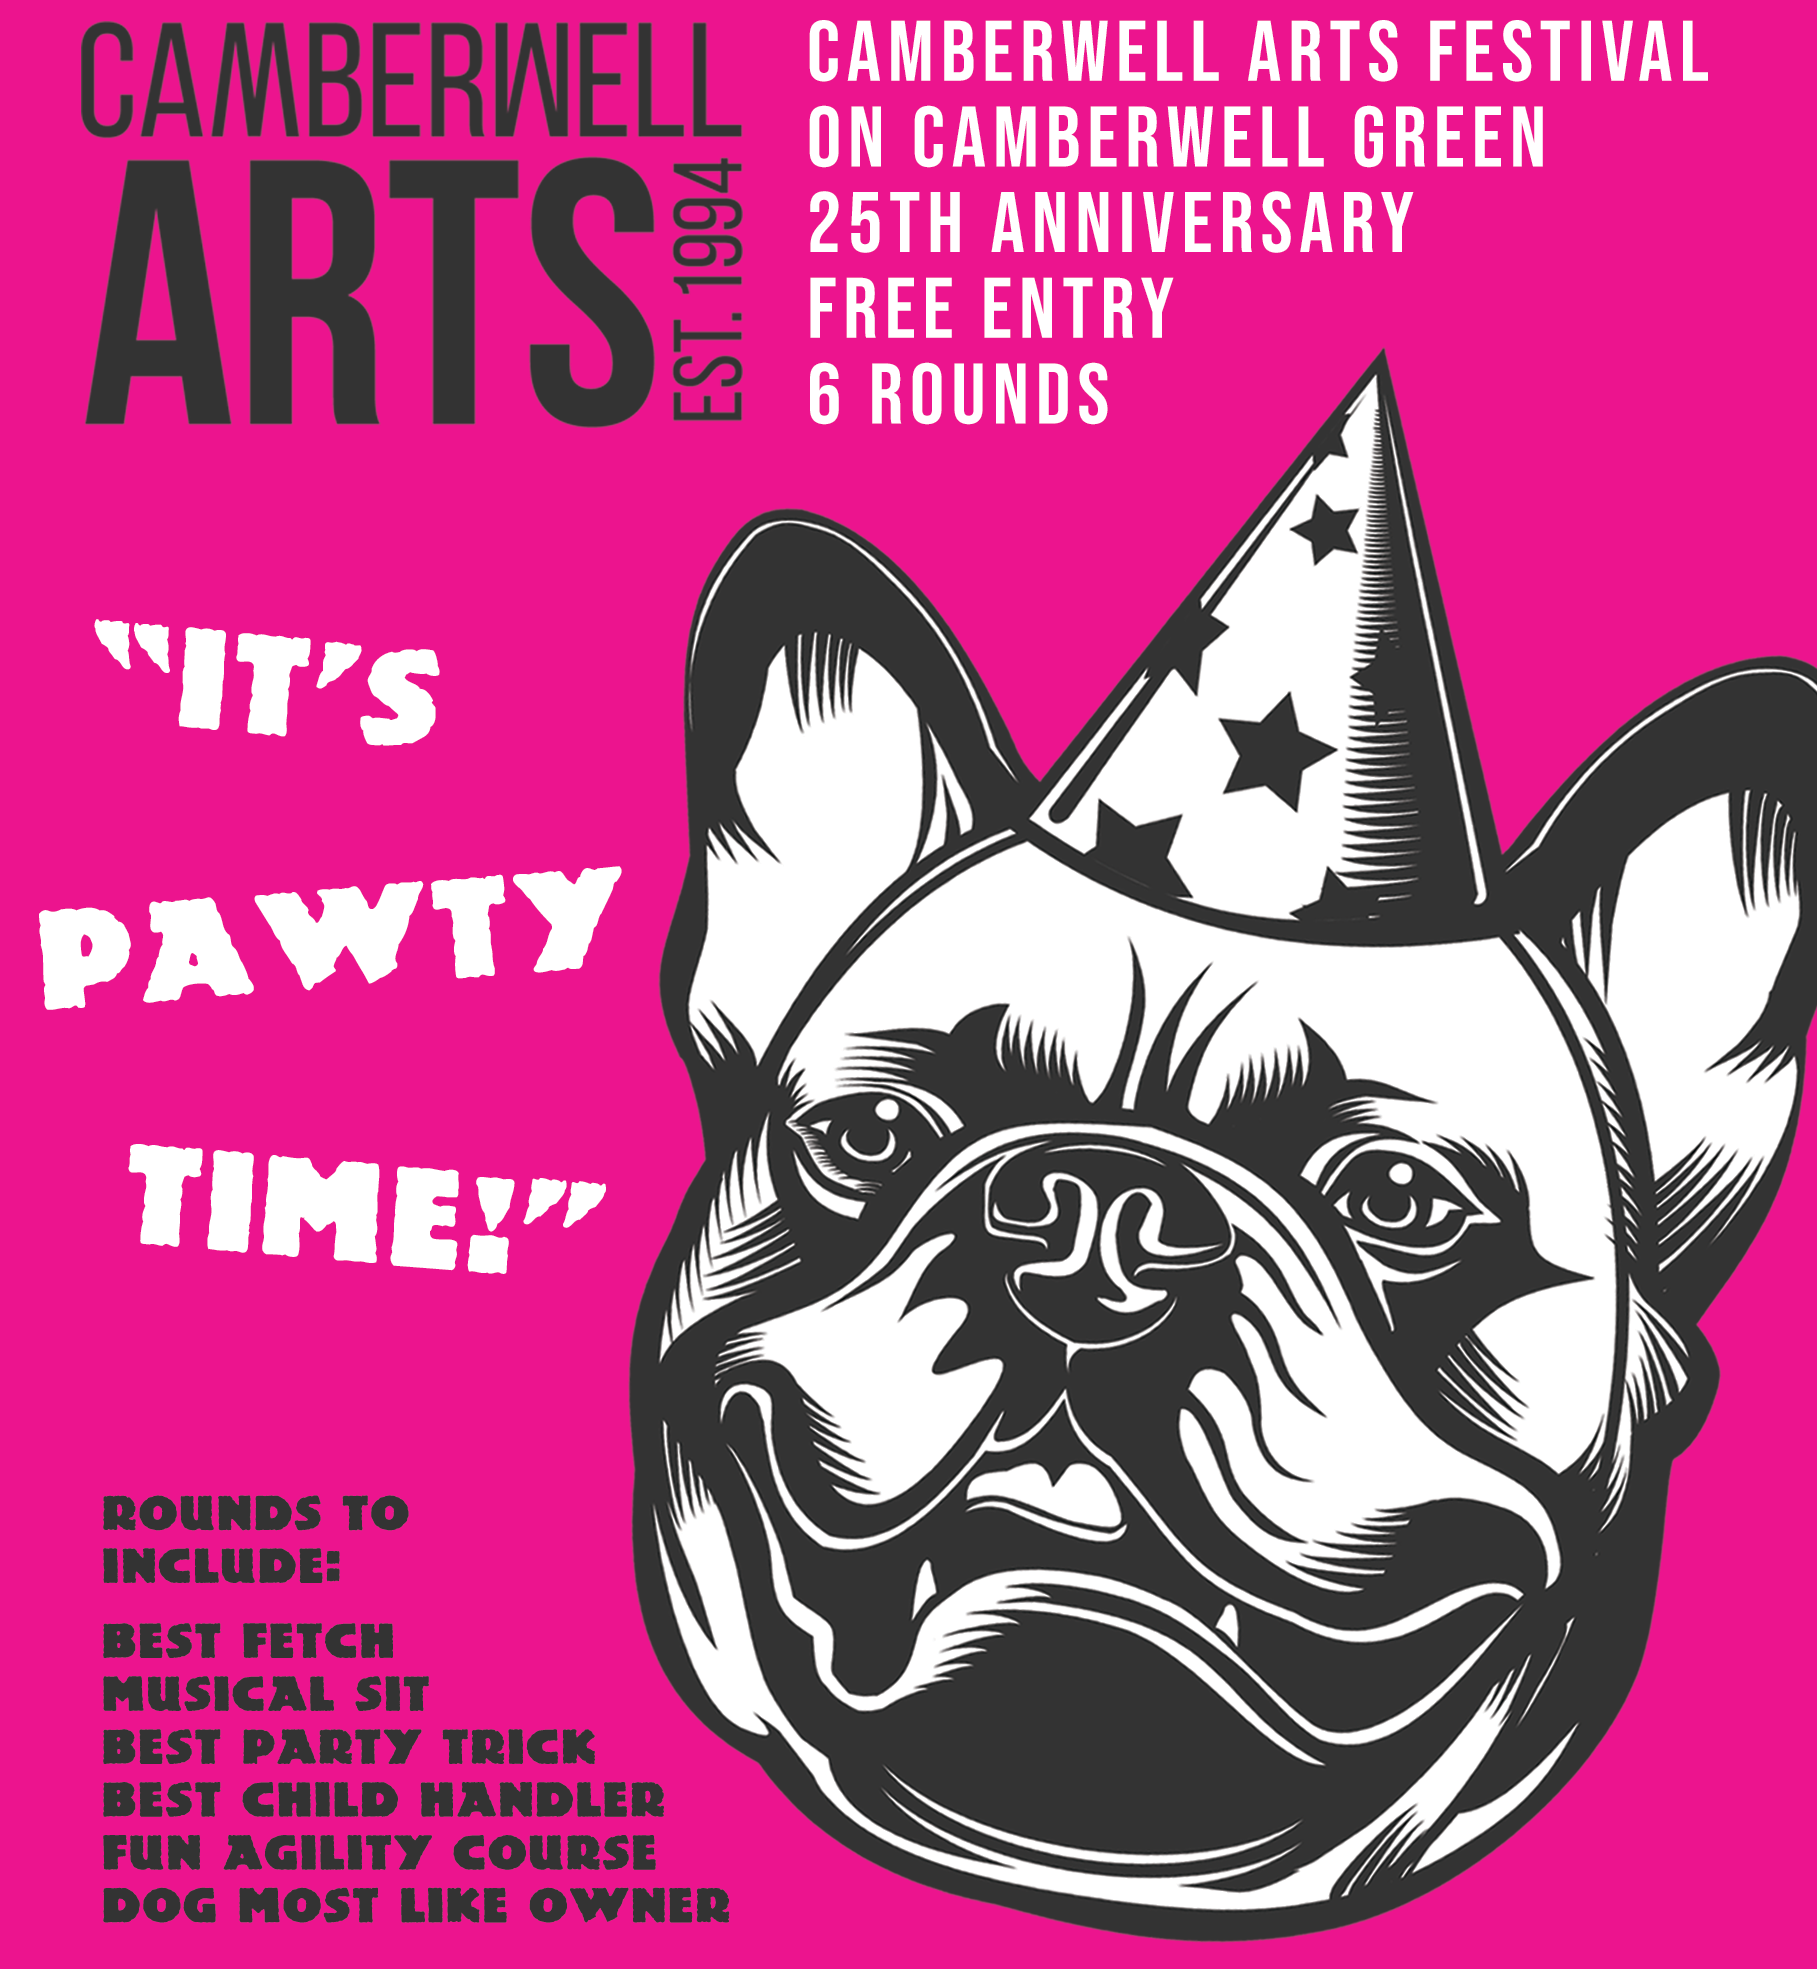 Dog Show - 14.00 - 14.30Camberwell Green, SE5 7AFWe're looking for Camberwell's best party animals! From party tricks to musical sits, rosettes will be awarded in a range of categories.FREE - registration from 13.30